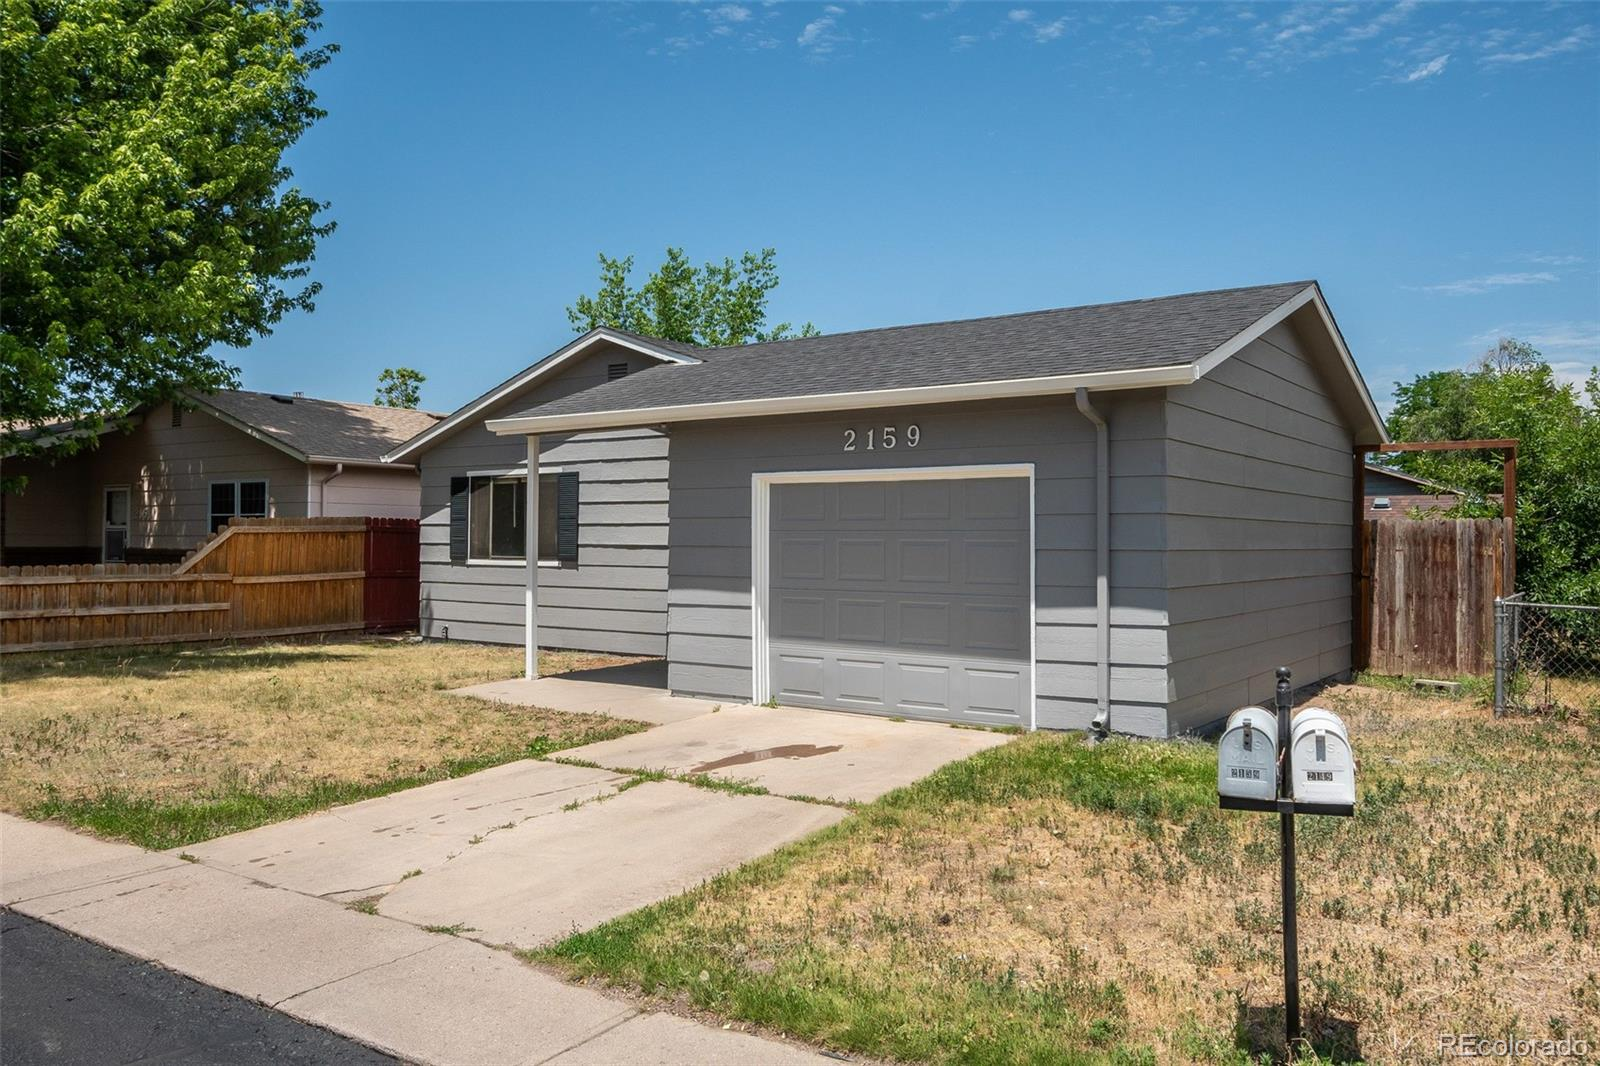 MLS# 8434629 - 2159 Wedgewood Drive, Greeley, CO 80631